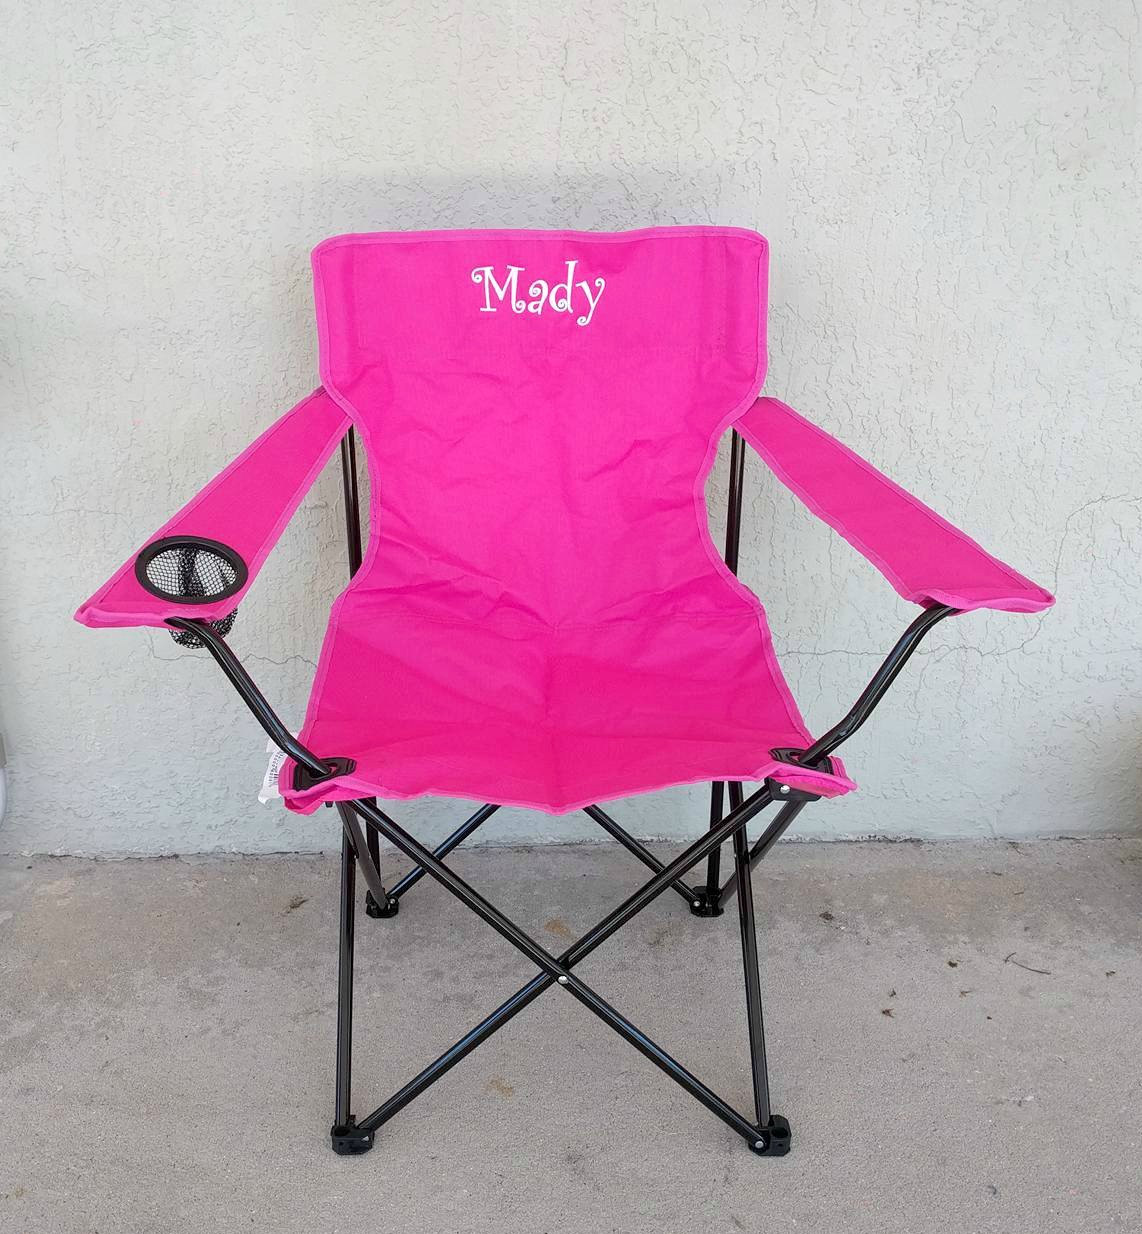 folding loveseat lawn chair discount pub table chairs personalized beach bag